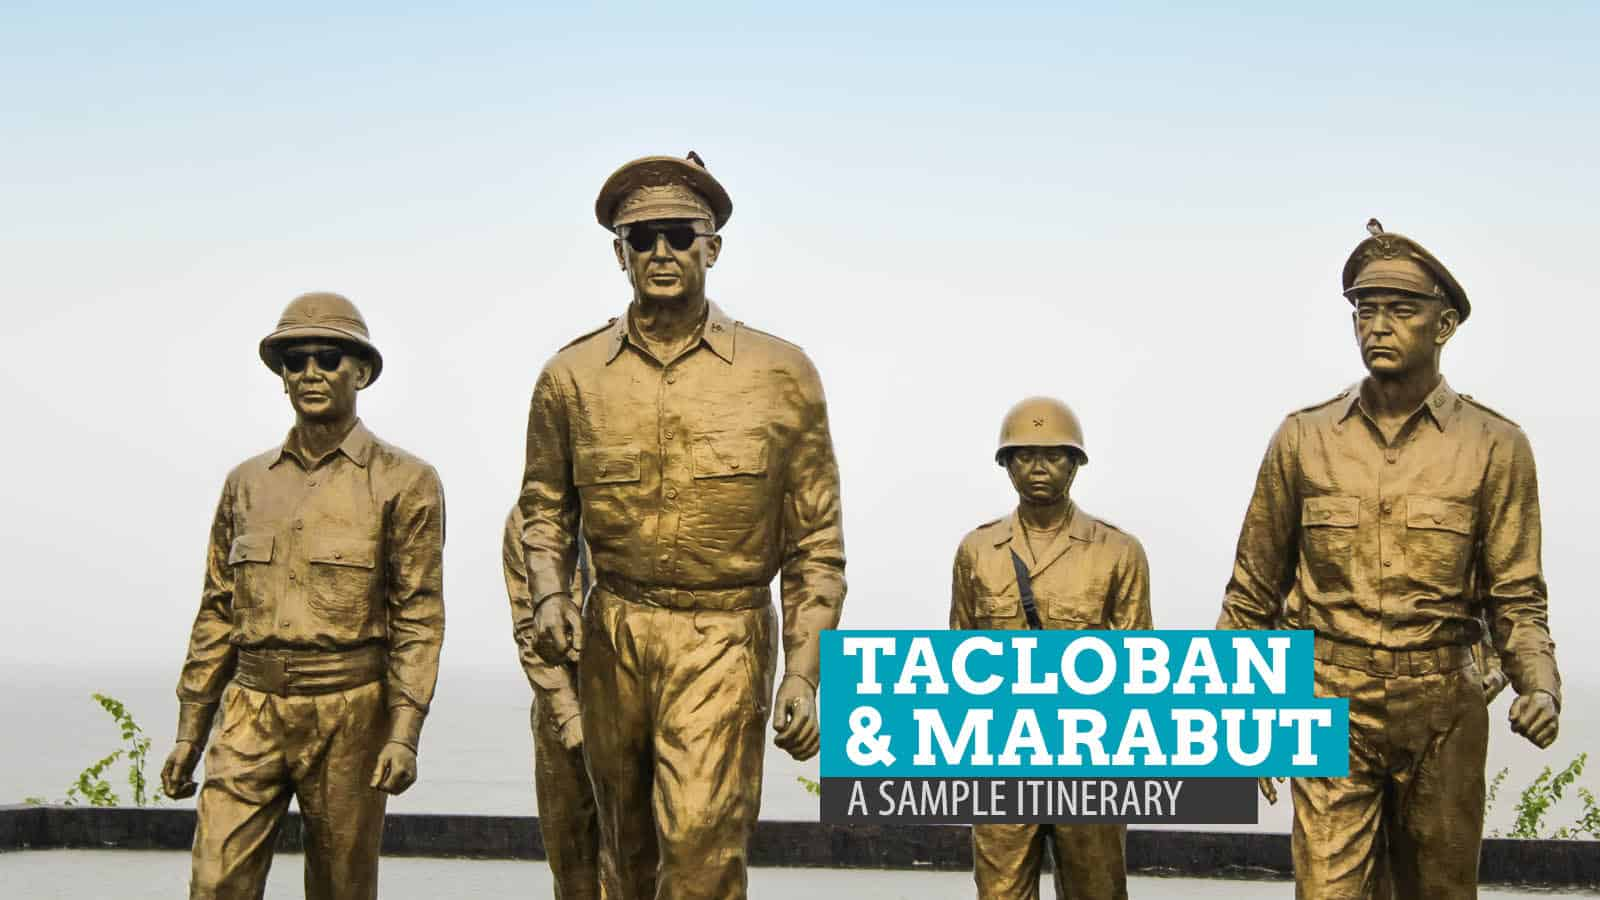 Tacloban-Marabut Trip: Summary, Itinerary and Budget – Philippines